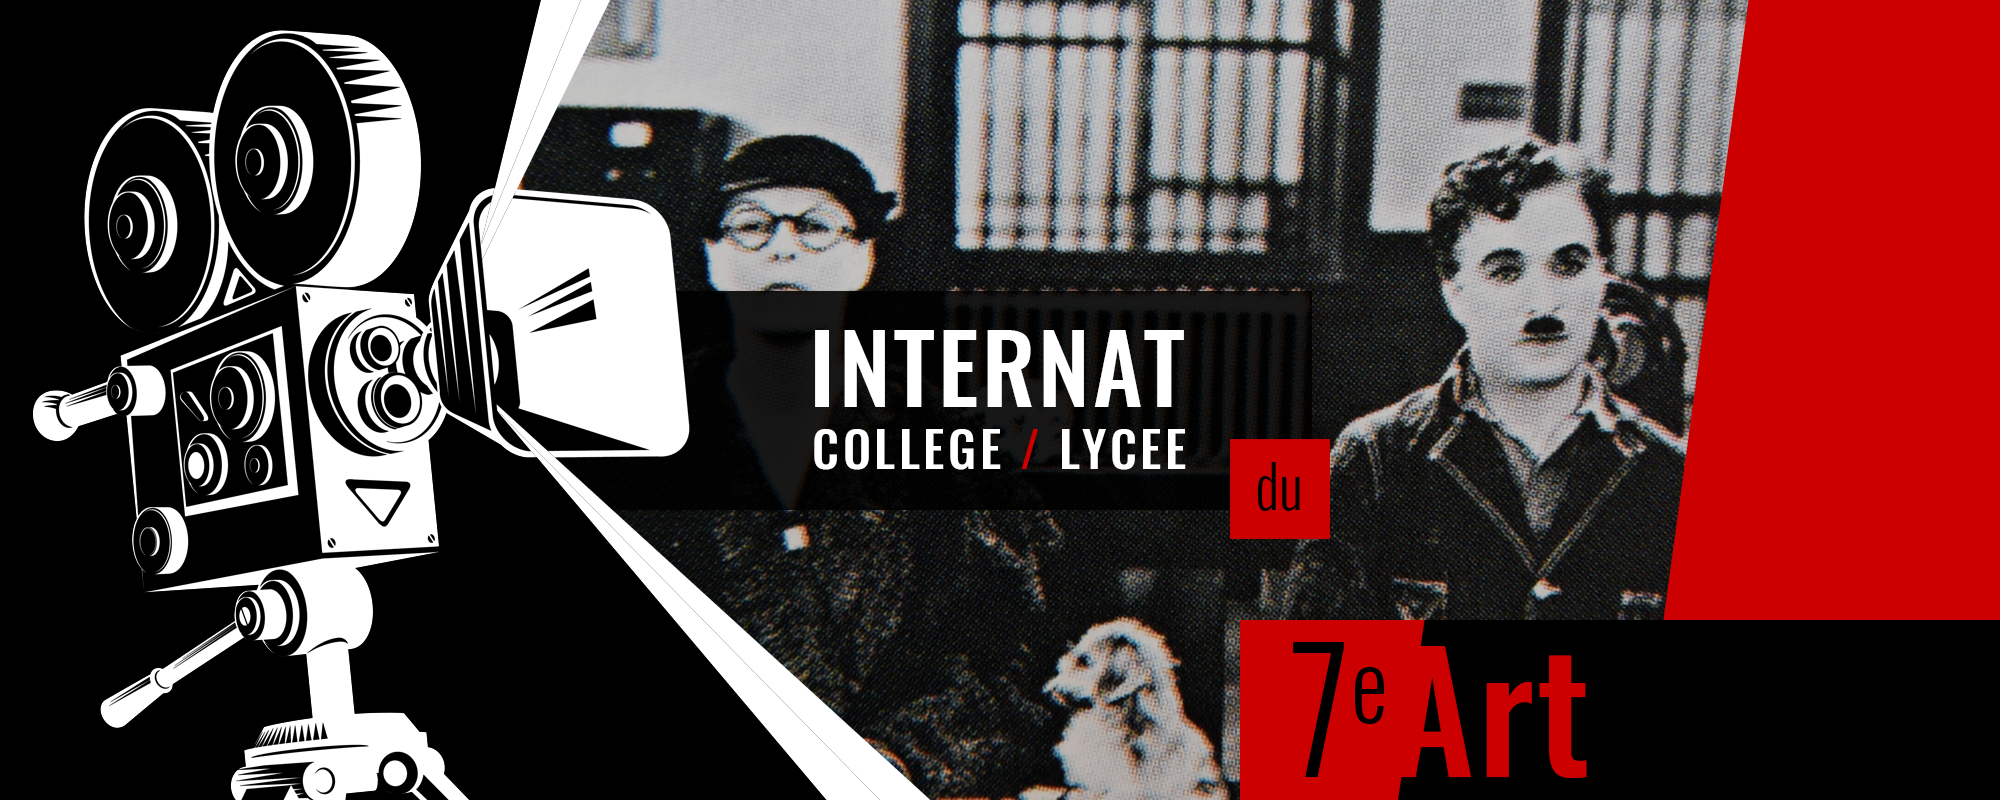 image internat college lycee au chateau troissy cinema 7e art film